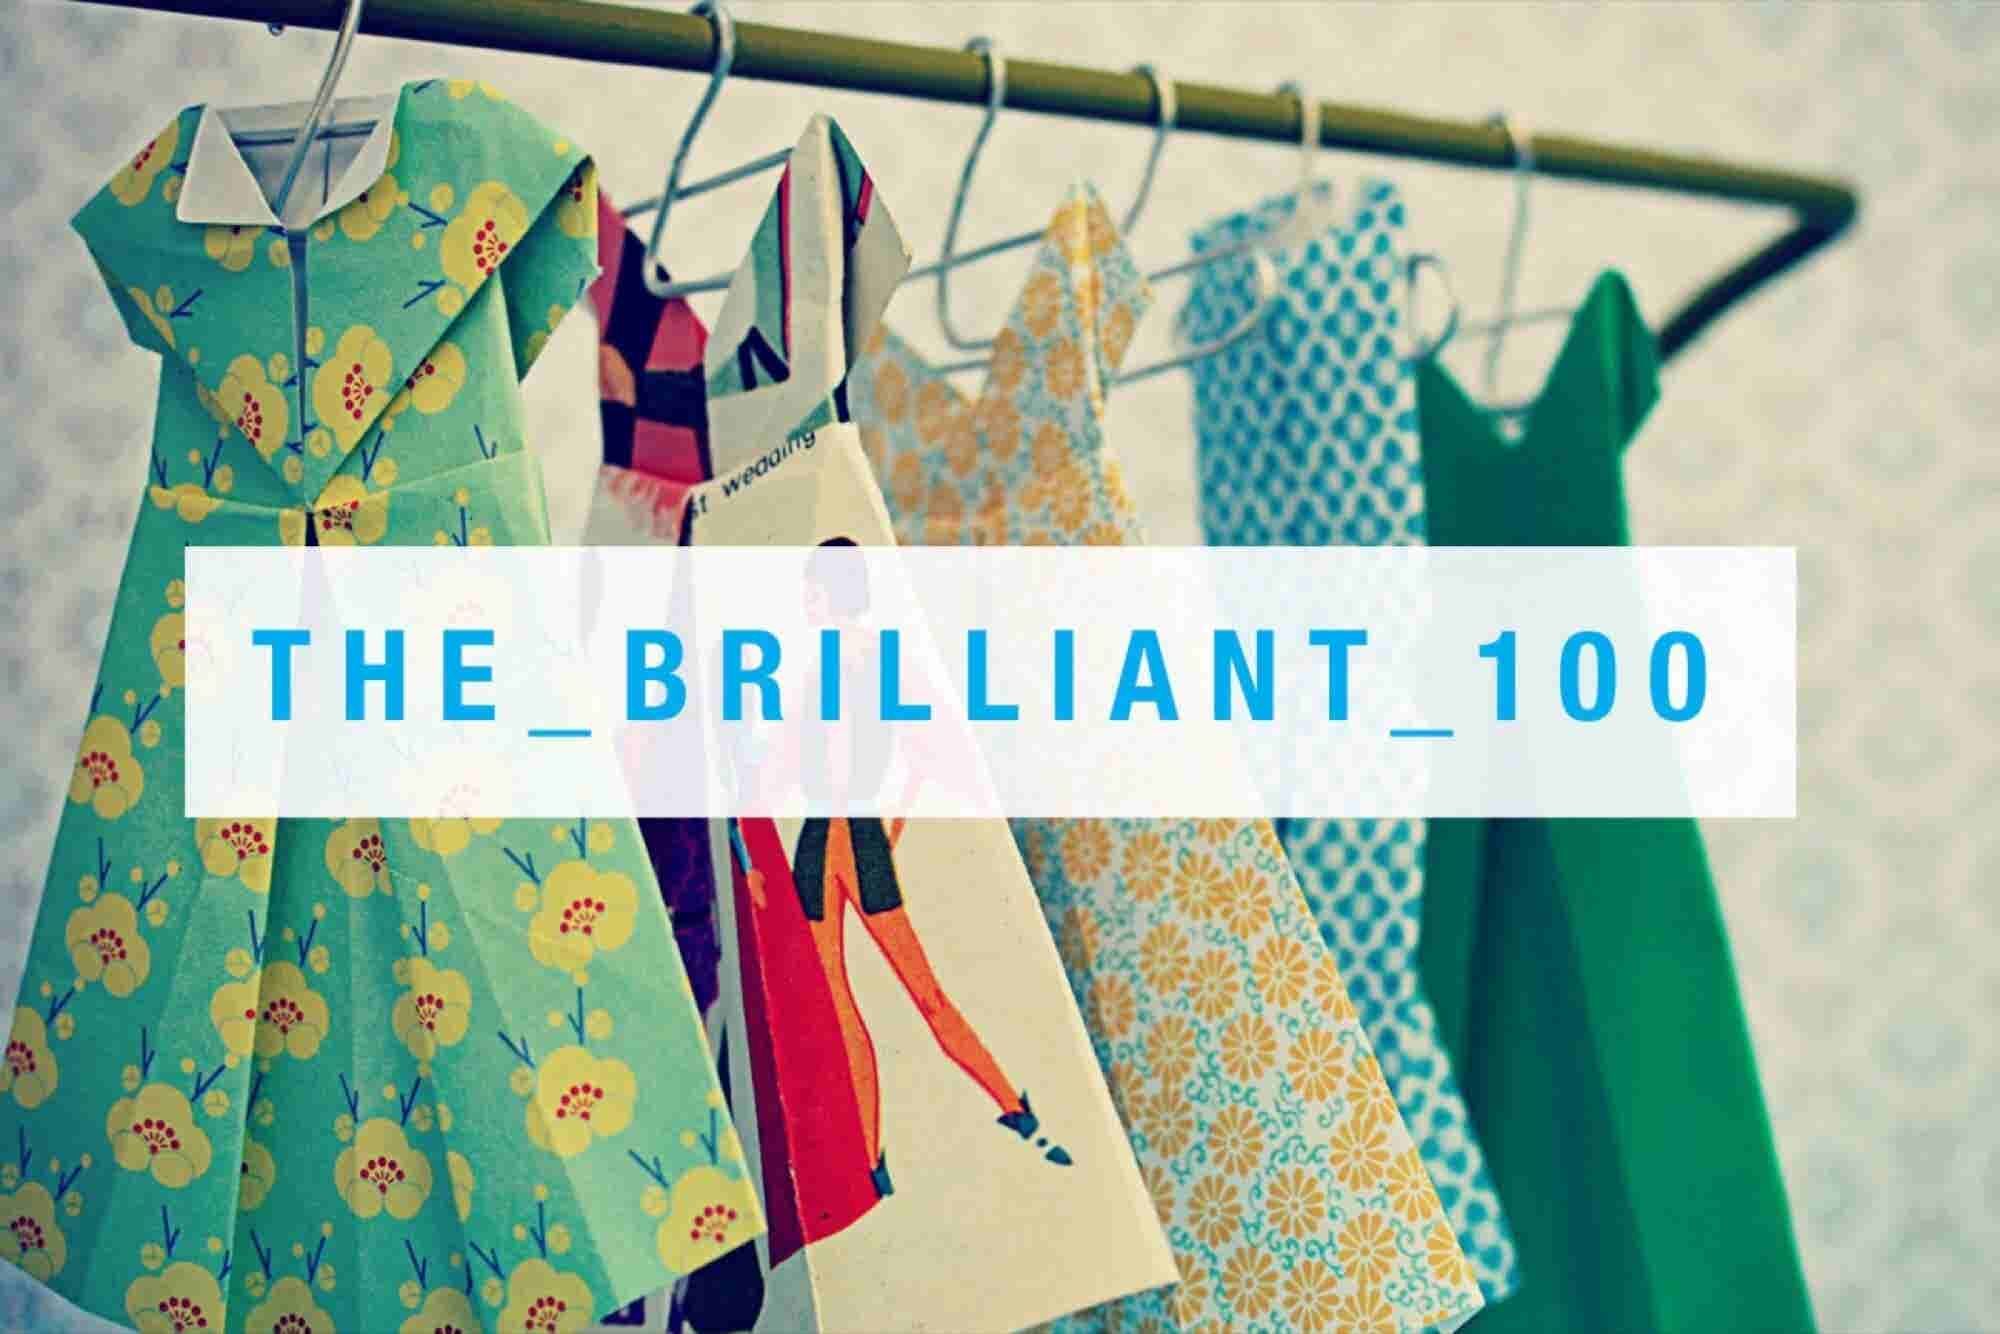 10 Fashion, Design & Retail Companies to Watch - Entrepreneur's Brilliant 100